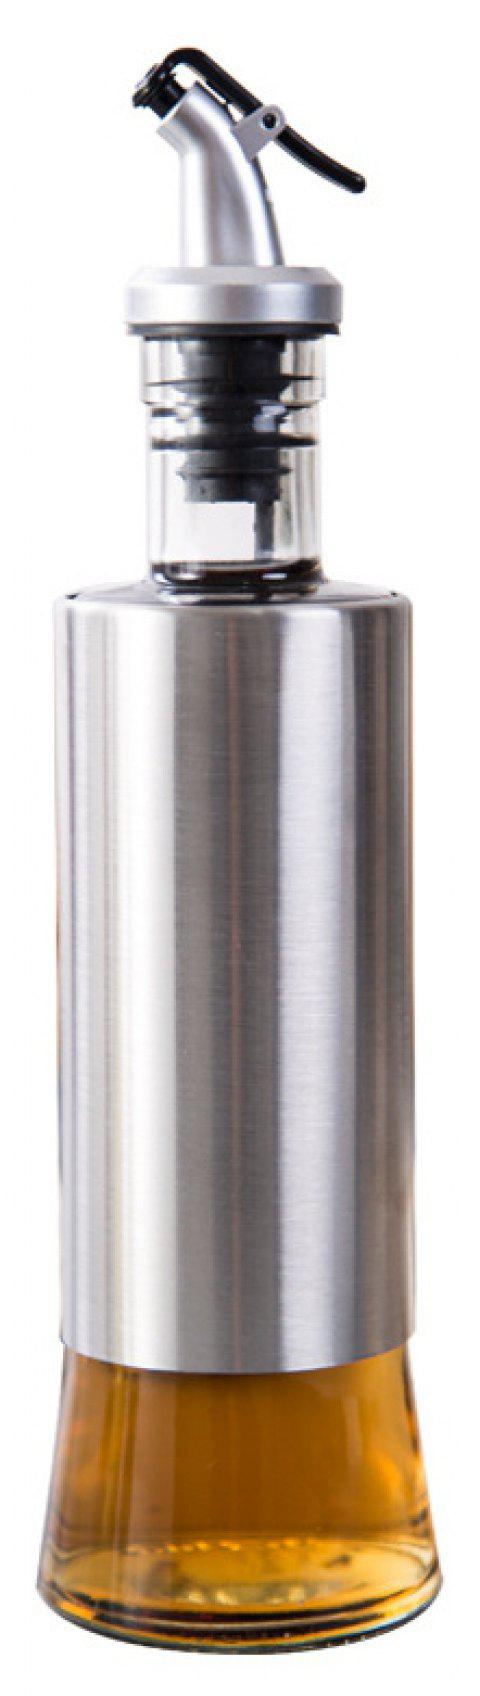 300ml Kitchen Glass Oil Can Stainless Steel Seasoning Sauce Bottle - SILVER